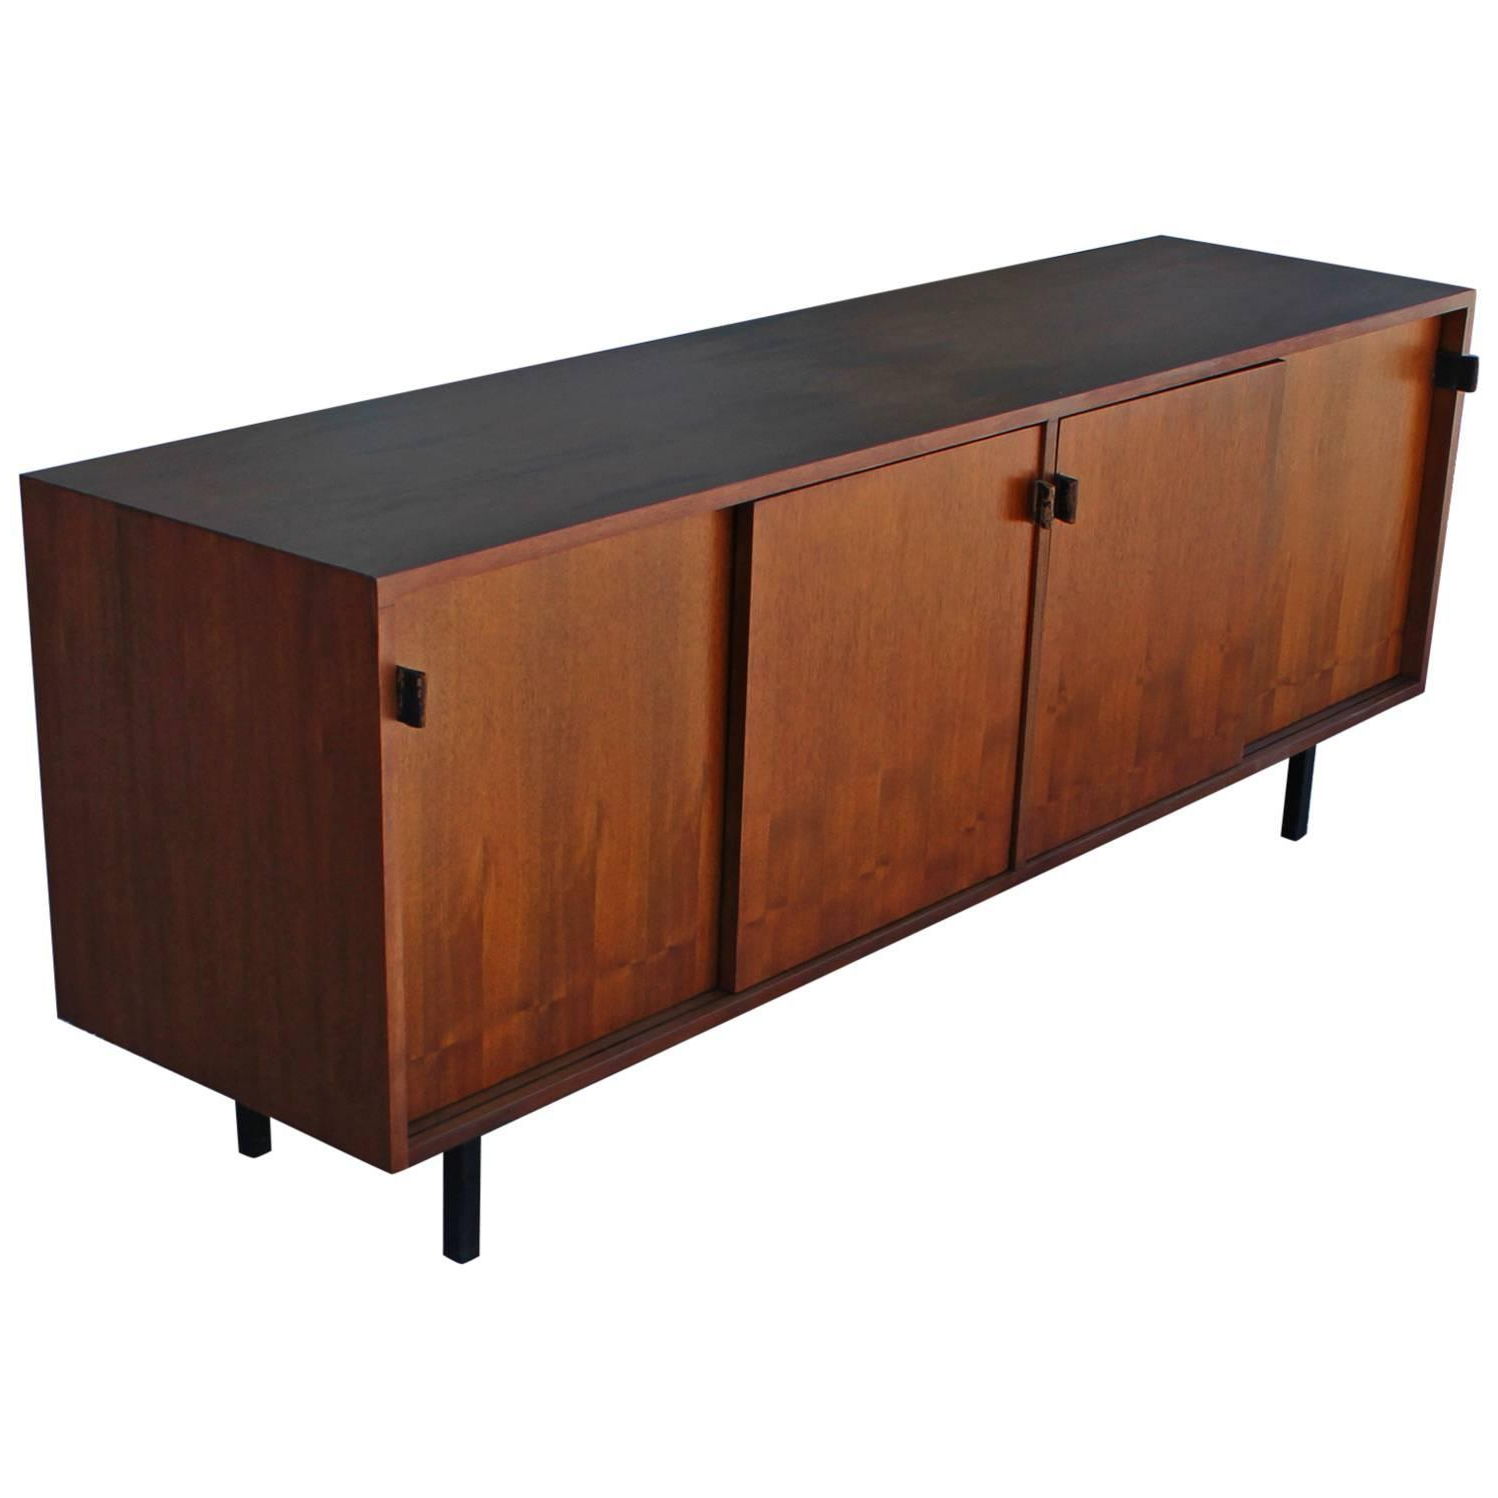 Fashionable Early Walnut Modern Knoll Sliding Door Sideboard With Vintage With Corrugated Natural 6 Door Sideboards (View 6 of 20)